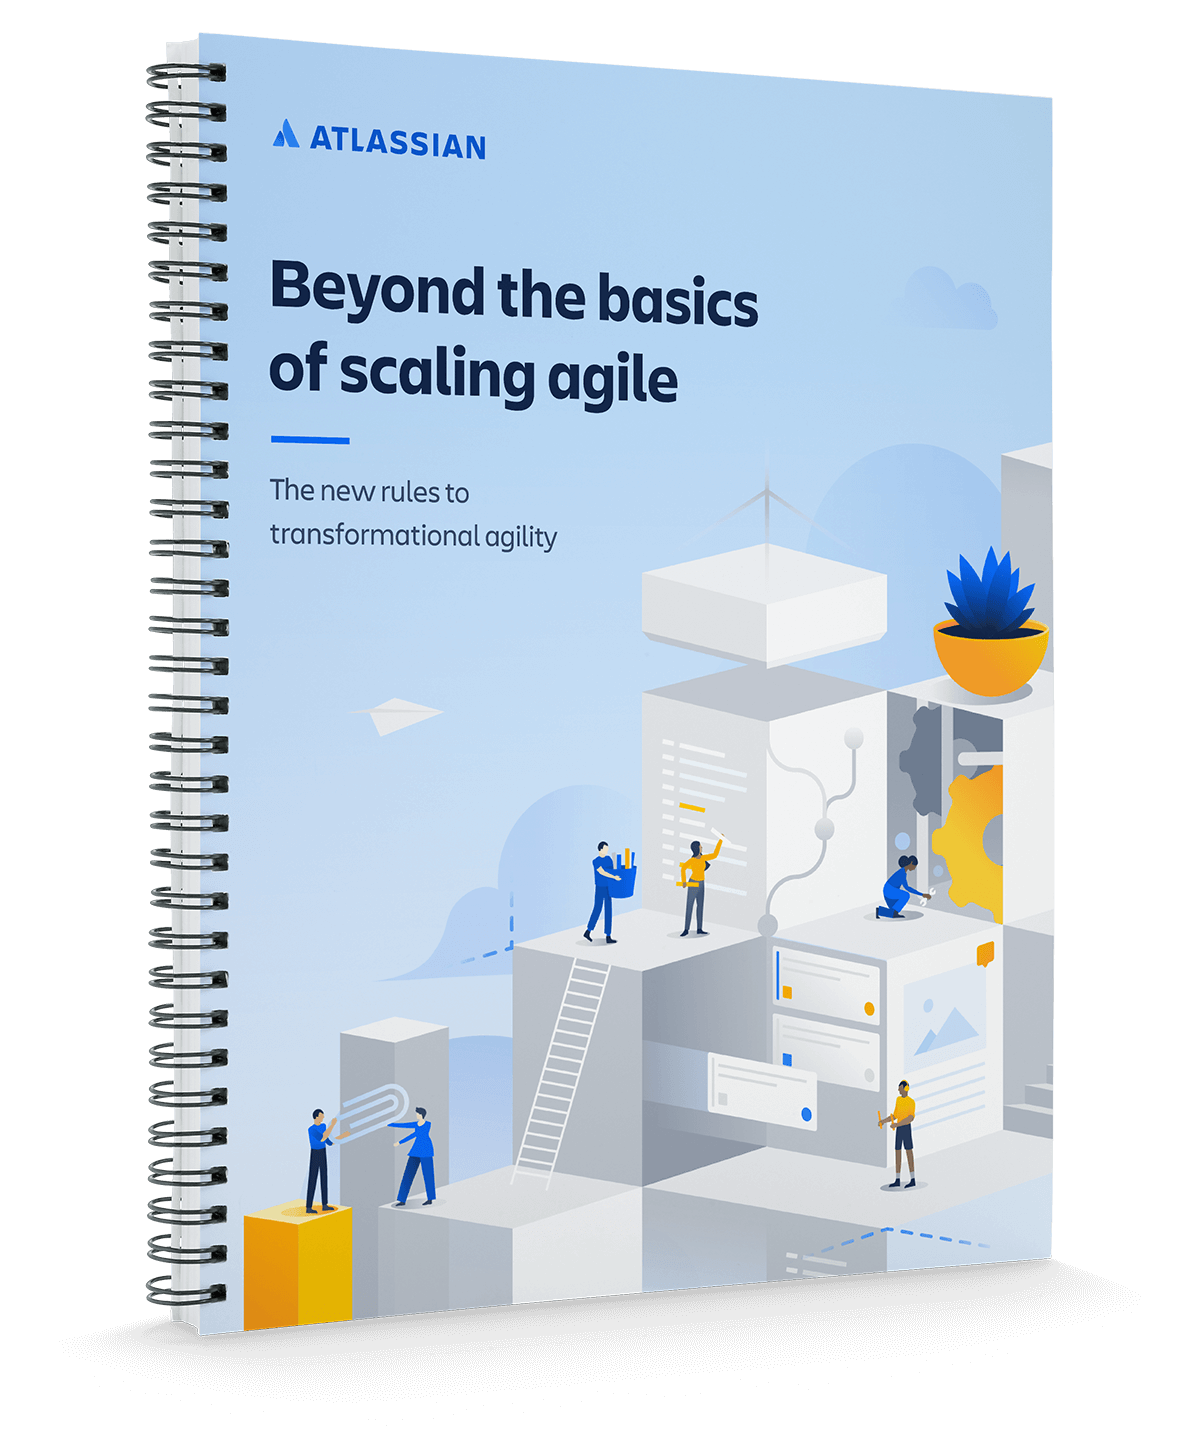 Beyond the basics of scaling agile whitepaper